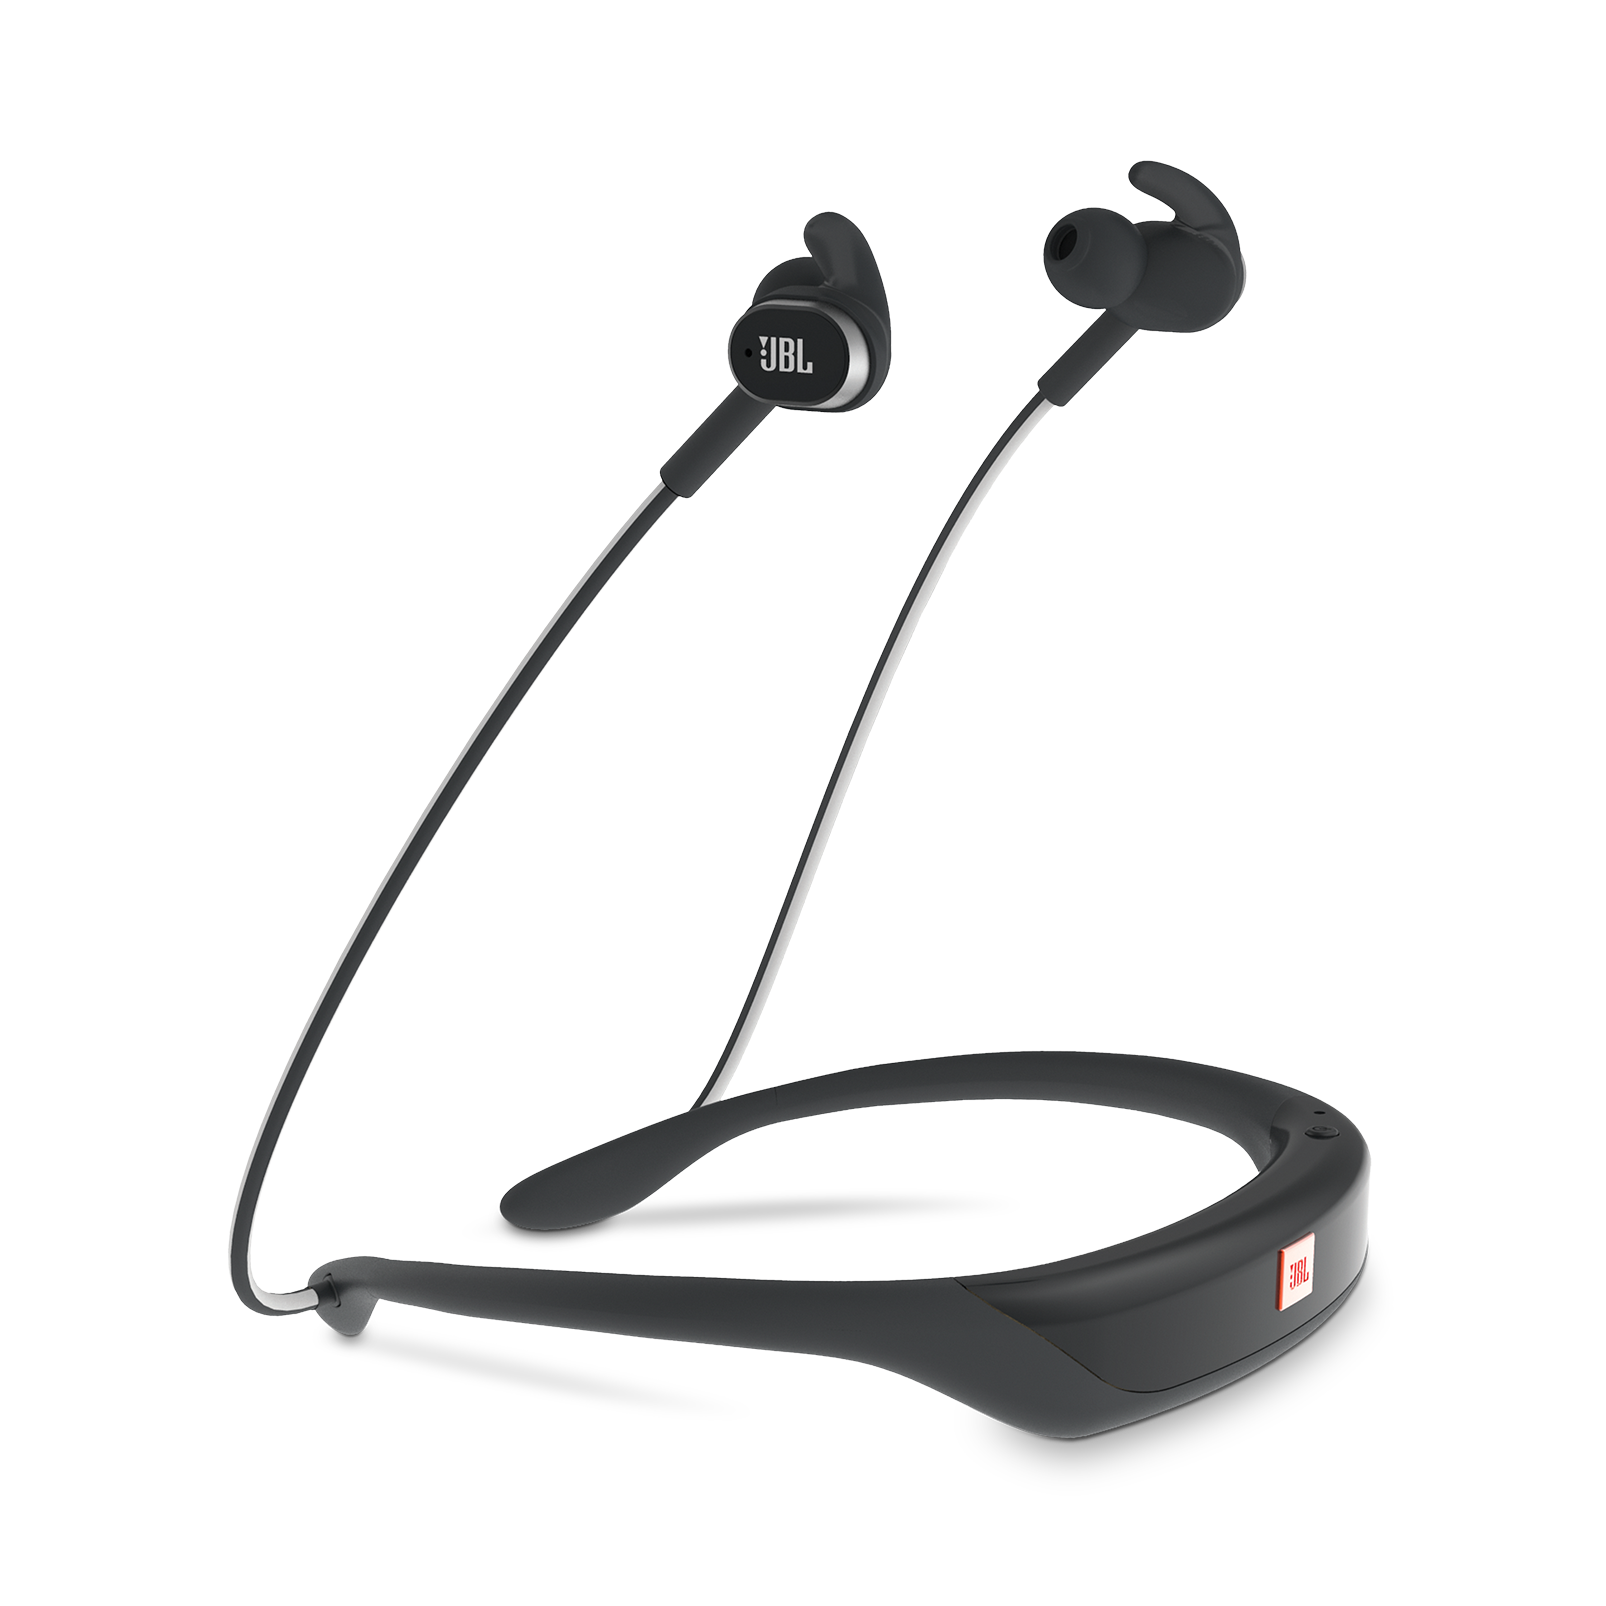 JBL Reflect Response BT Black: In-ear Bluetooth Gesture Control Sport Earphones